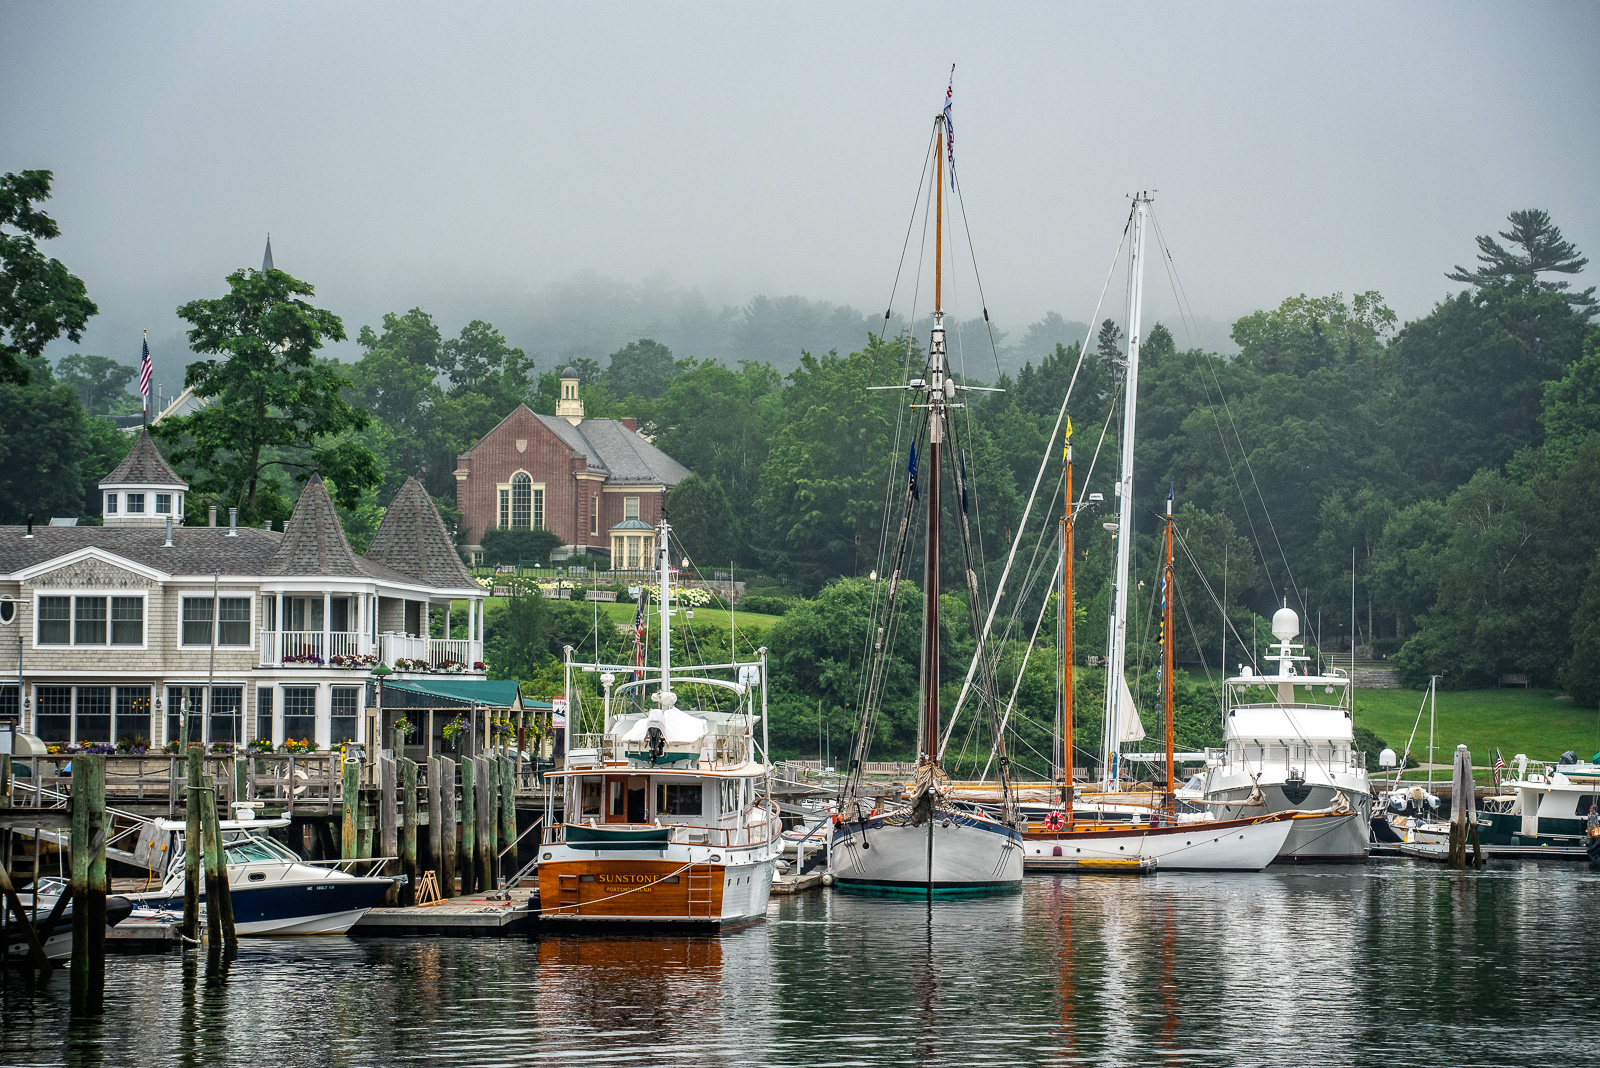 Morning fog and it's quite still at Camden, Maine's harbor.  Things will pick up as the fog starts to clear later in the...